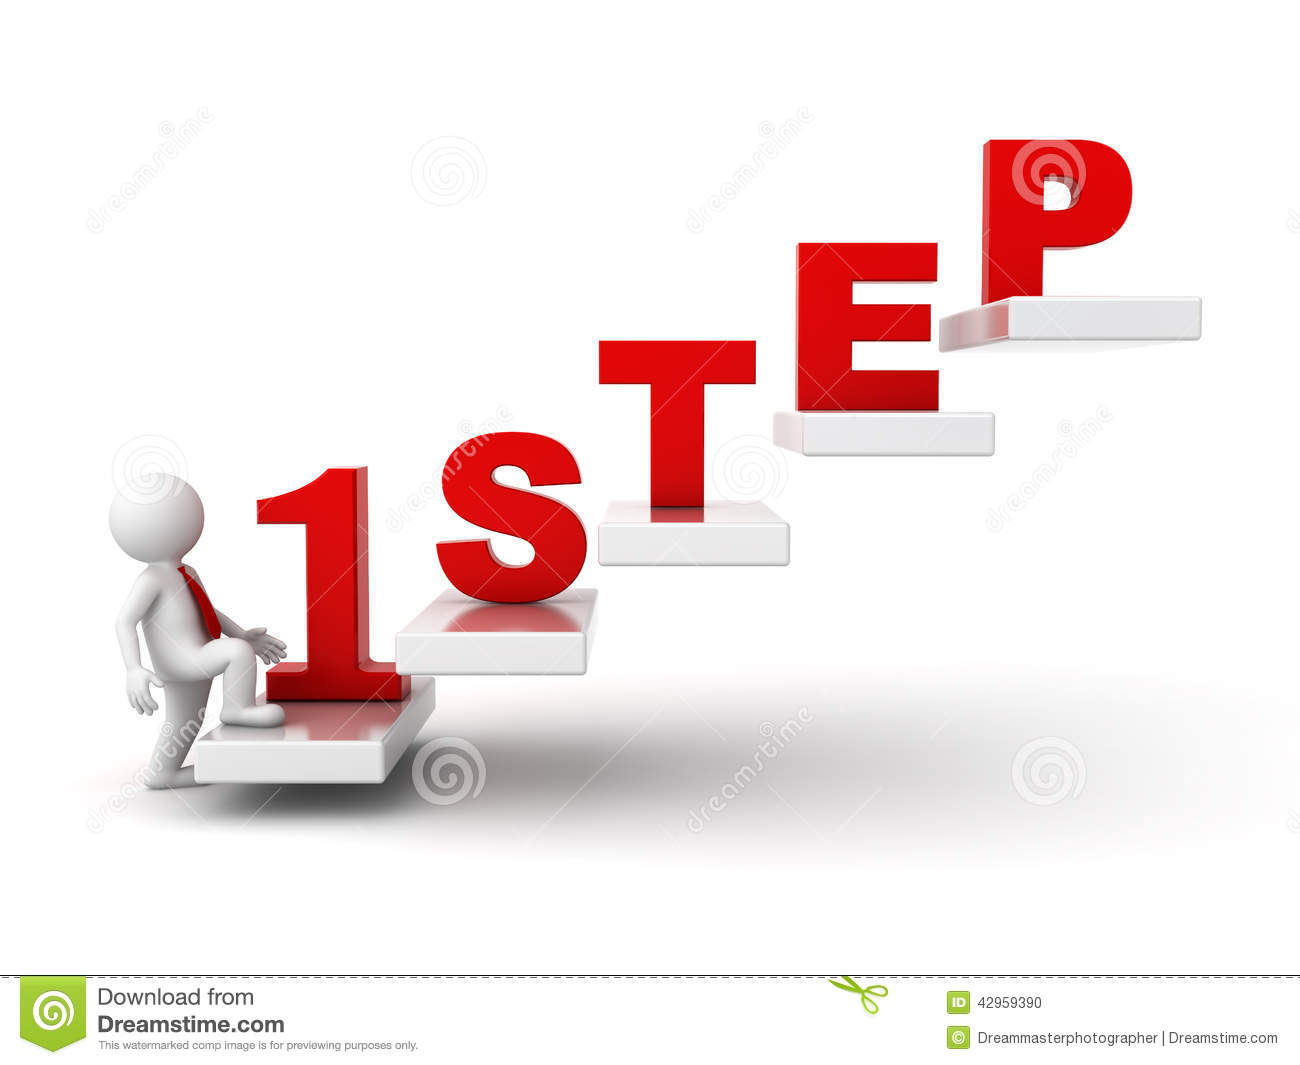 Man Stepping Success Steps Stock Illustrations 54 Man Stepping Success Steps Stock Illustrations Vectors Clipart Dreamstime